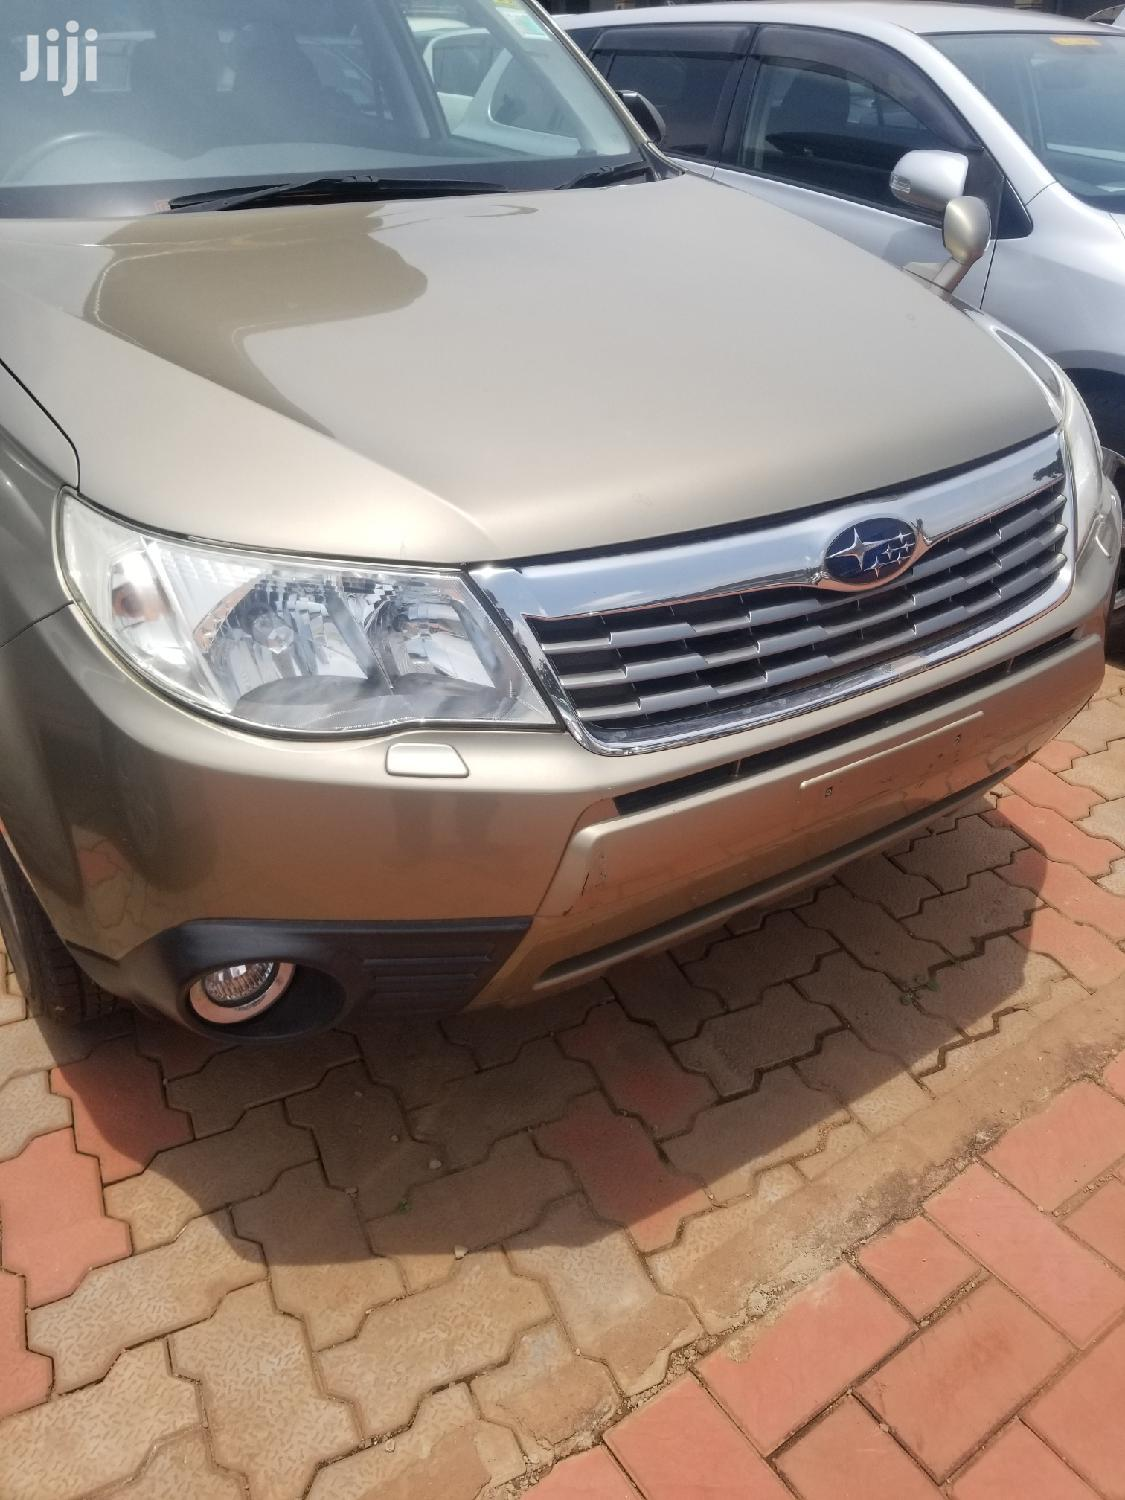 Archive: New Subaru Forester 2008 Gold